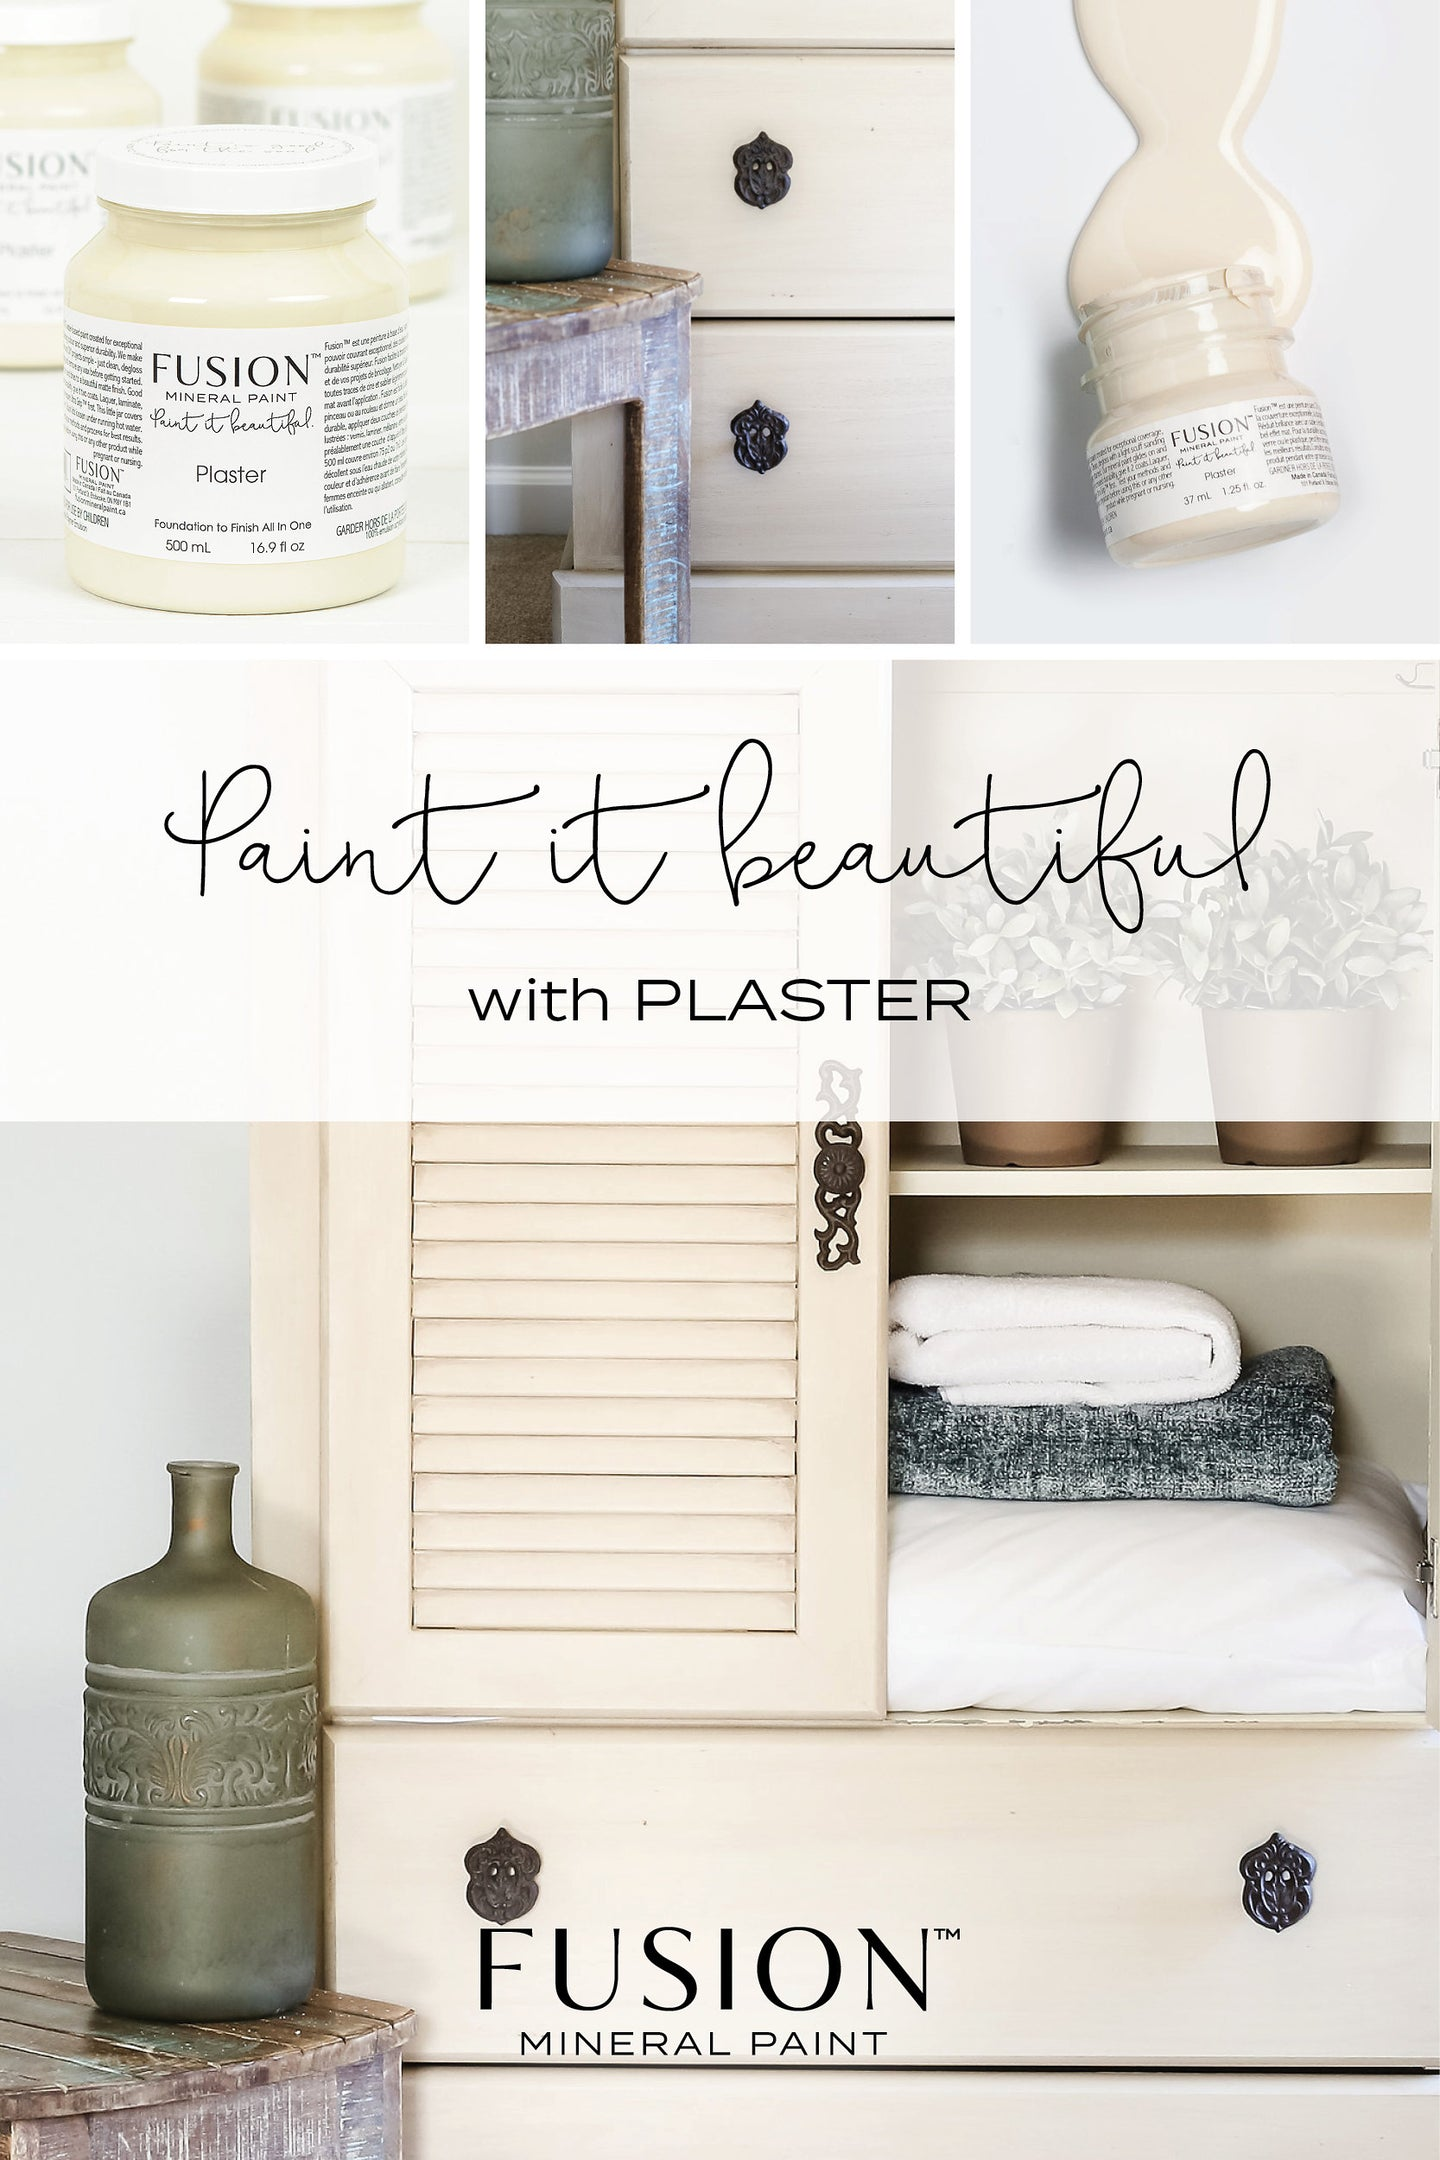 Plaster FUSION Mineral Paint